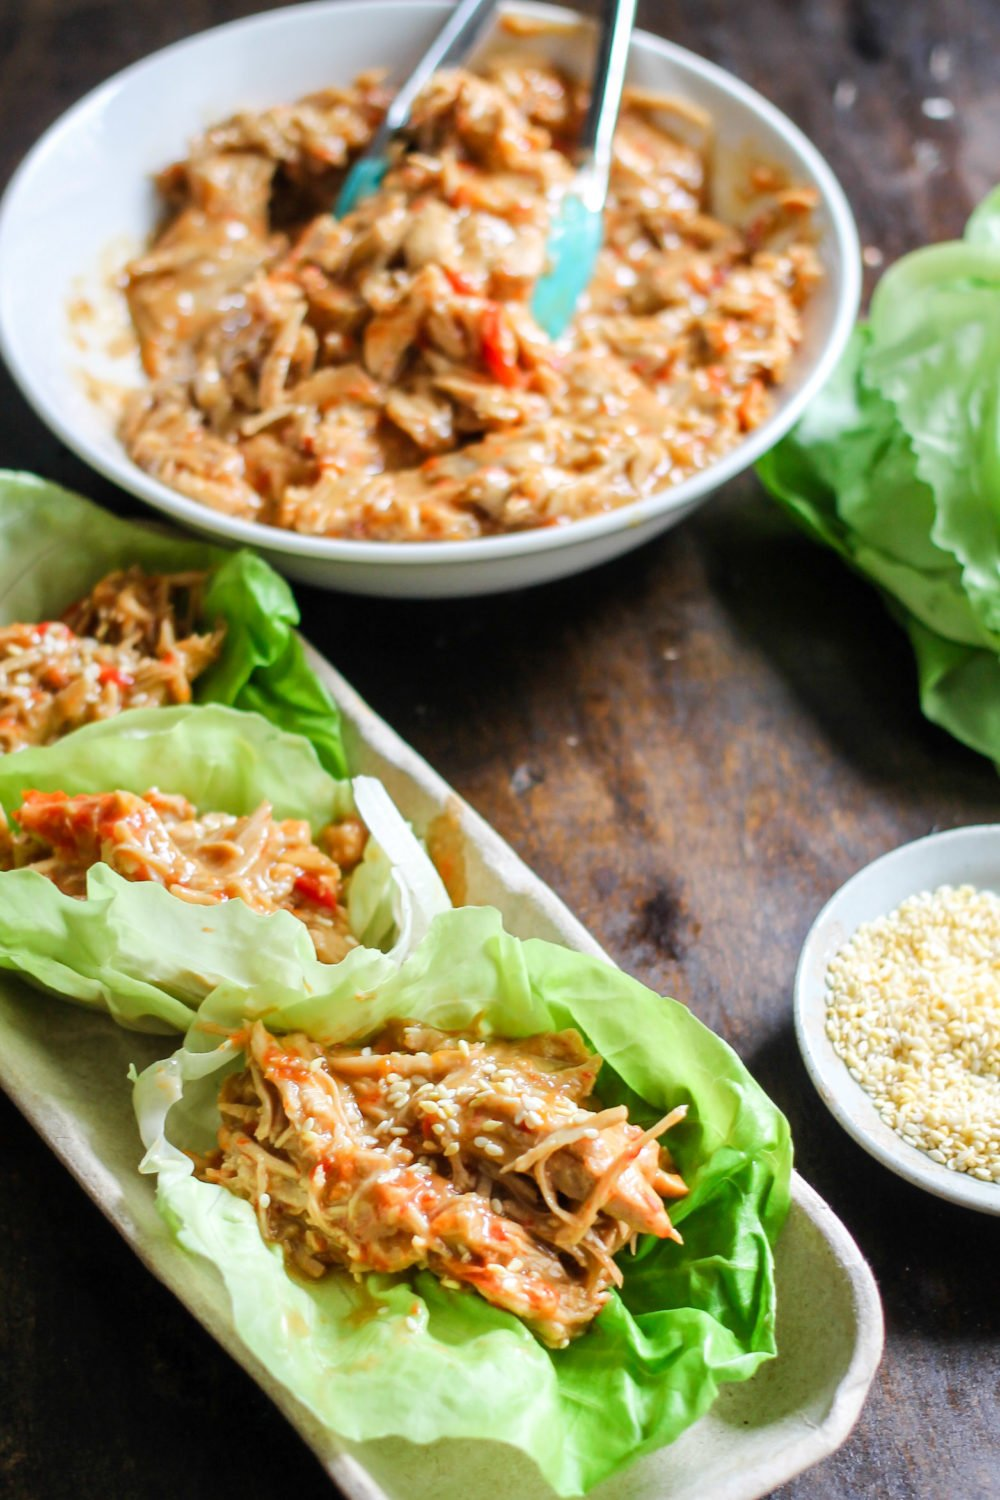 Thai Lettuce Wraps can be made with pork or chicken in the instant pot or slow cooker! Juicy pork or chicken covered in an easy Thai peanut sauce makes the perfect healthy easy dinner!